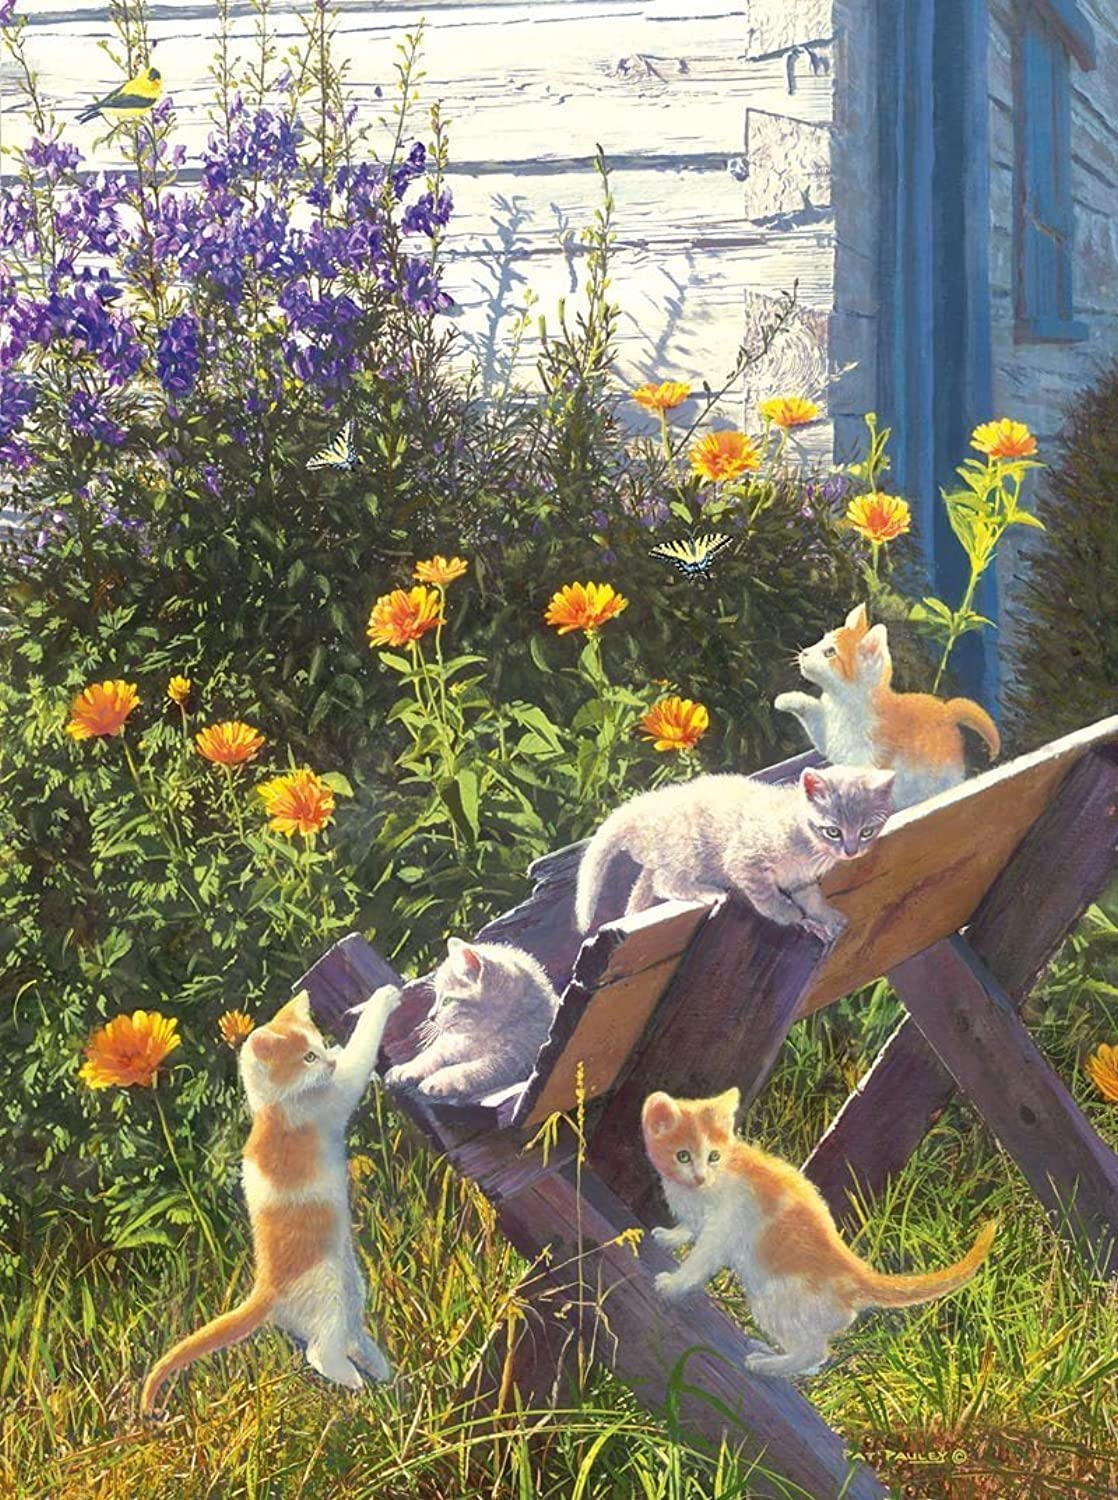 Kittens in the Country 1000 pc Jigsaw Puzzle